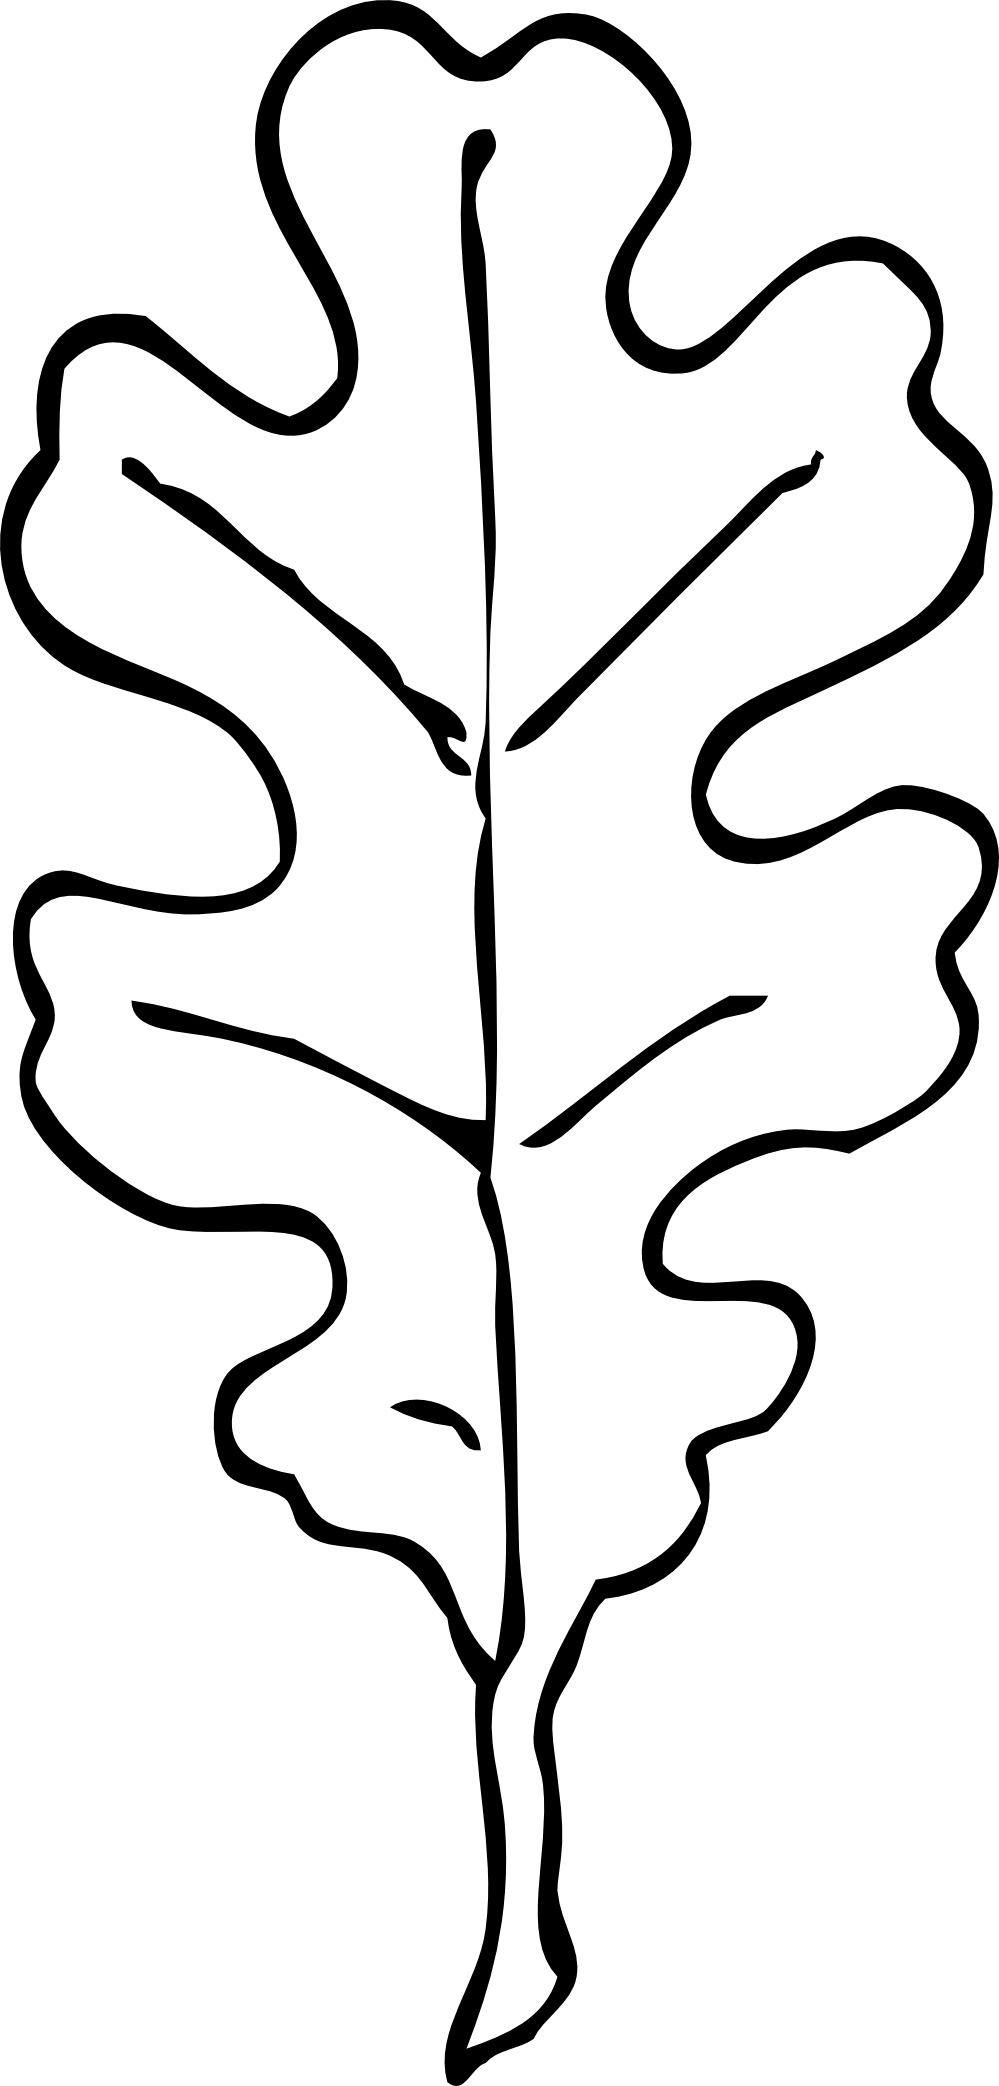 White oak leaf outline patterns leaves and clipart.